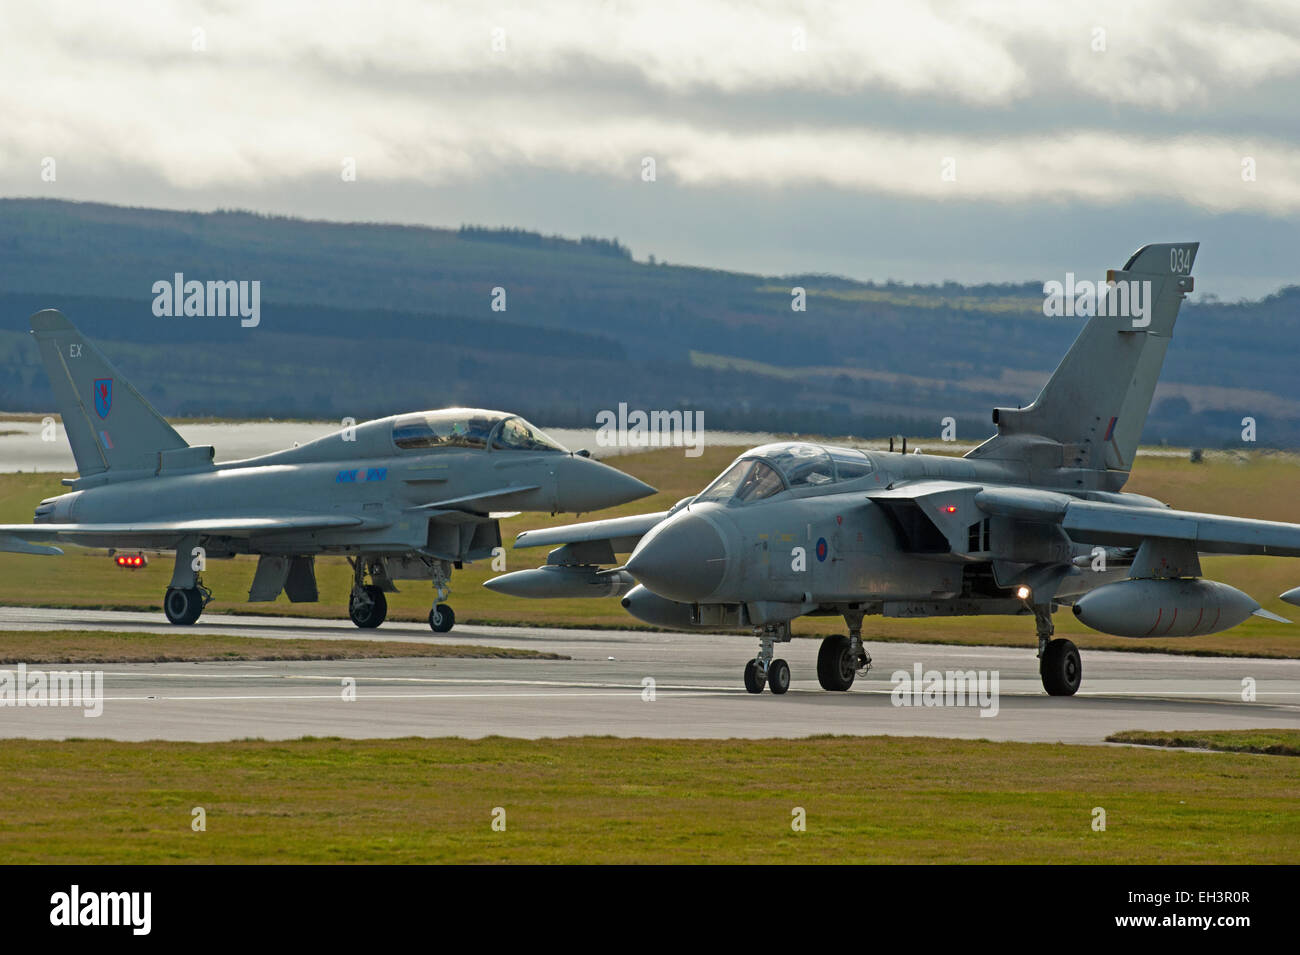 The old and new as an RAF GR4 Tornado taxis past the latest FRG4 Eurofighter Typhoon jet fighter.  SCO 9626. - Stock Image